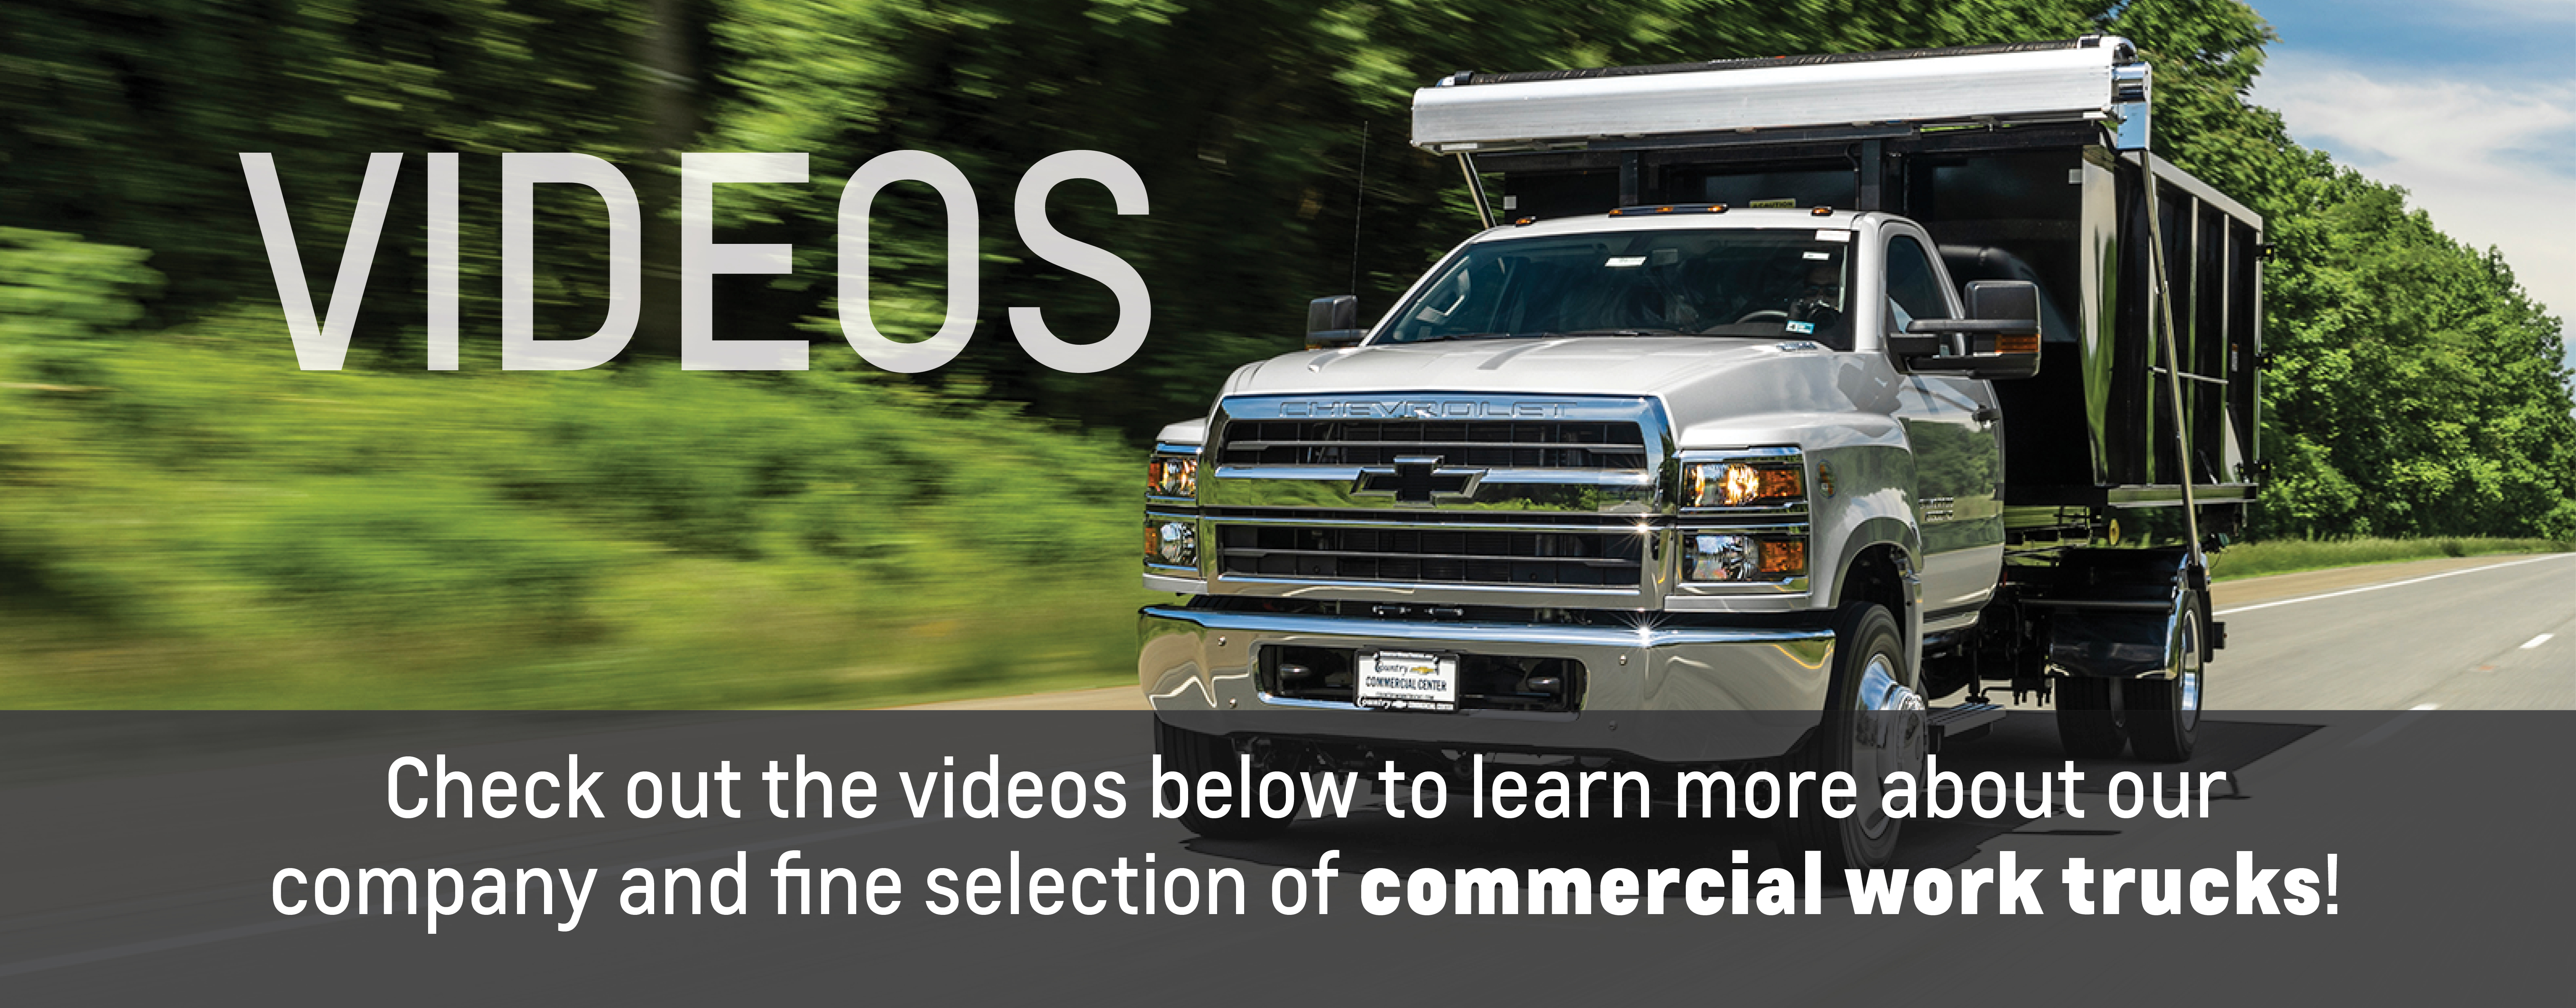 Country Commercial Center Serving Warrenton Va Chevrolet New Used Cars Videos